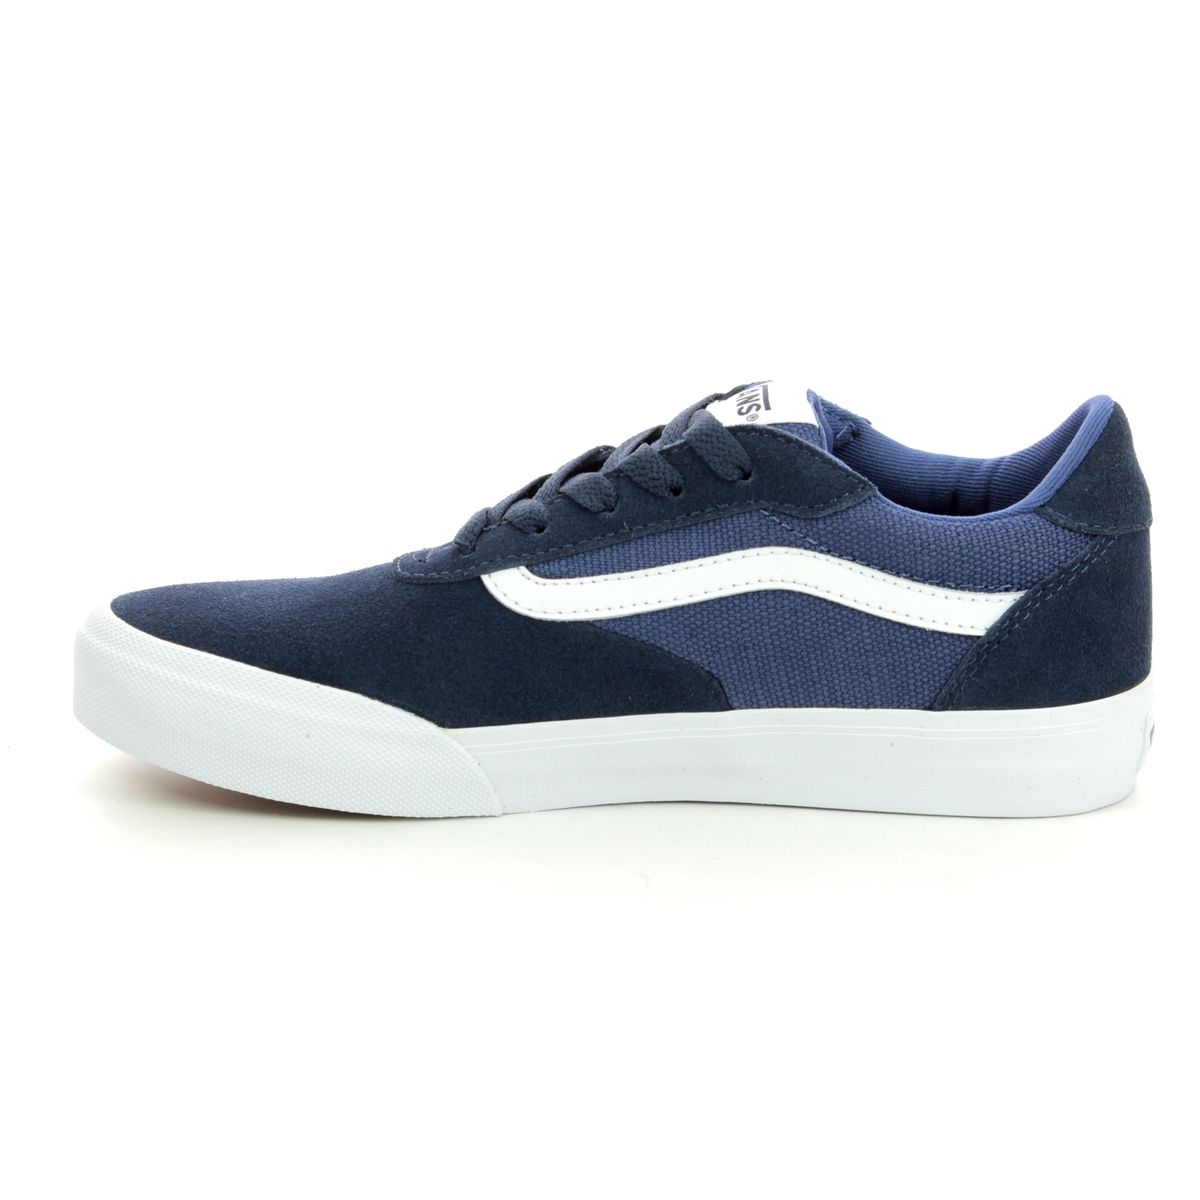 5bd30f137c Vans Trainers - Navy - VN0A3WMXV G6 PALOMAR YOUTH